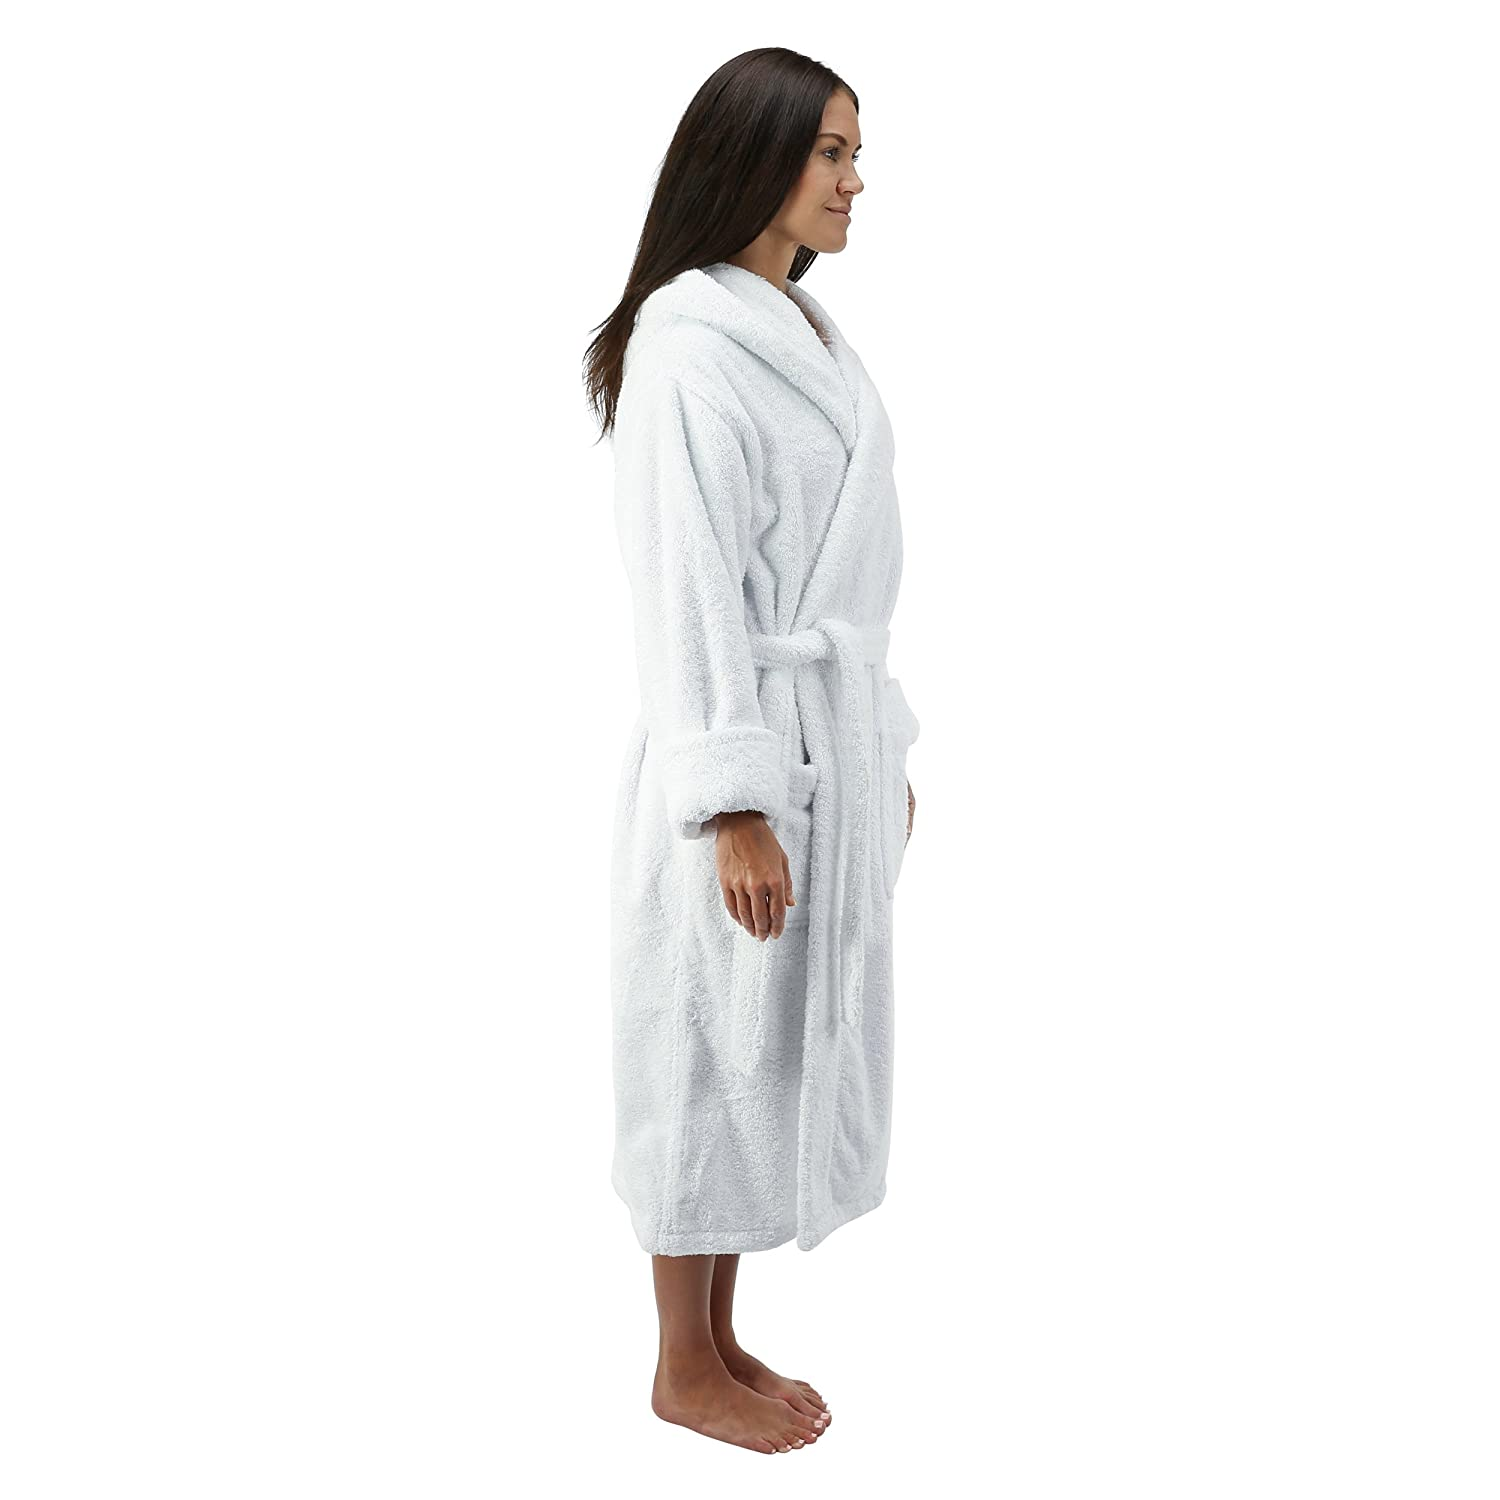 966a30f9dec6f Comfy Robes Personalized Womens Deluxe 20 oz. Turkish Cotton Hooded Bathrobe  XPR300